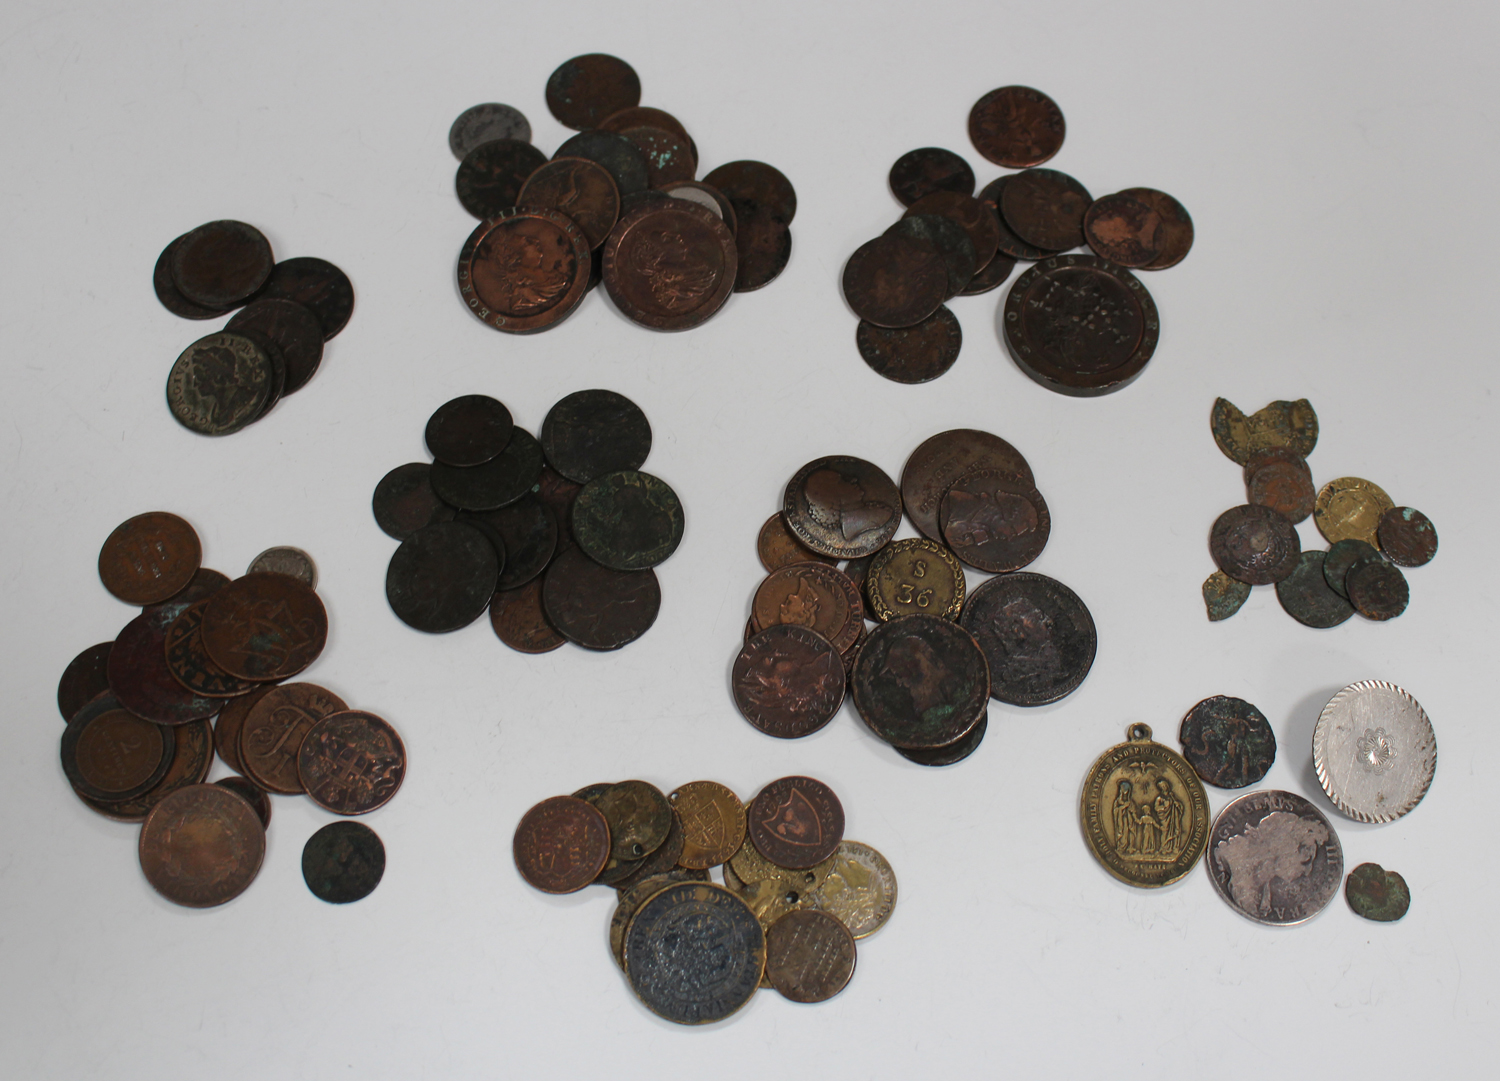 A group of 17th century and later British and world coins